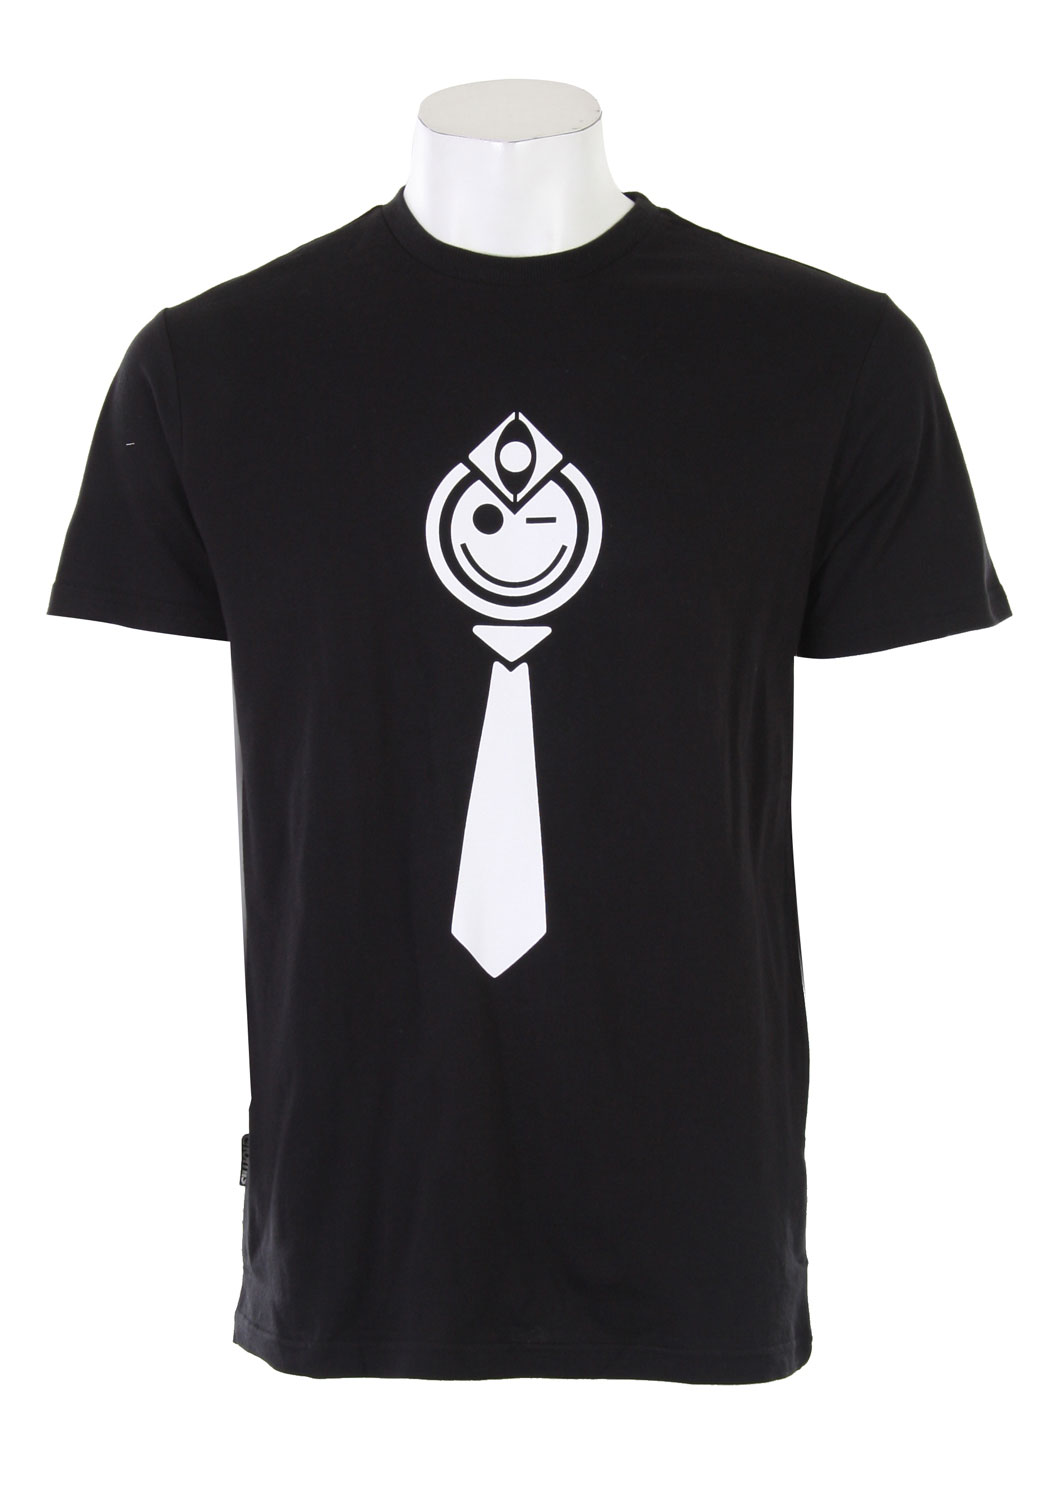 Don't worry, be happy. Sing that tune out loud all day long with the Nomis Smile T-Shirt! This 100% cotton t-shirt has a large screen printed smiley design that will keep you smiling all day! Its classy fit and heavy duty construction make it a perfect shirt for any occasion. Stand out from the pack with this positive t-shirt from Nomis. The Nomis Smile T-Shirt is guaranteed to make everyone around you smile with you!Key Features of the Nomis Smile T-Shirt Black: 100% Cotton. - $20.95